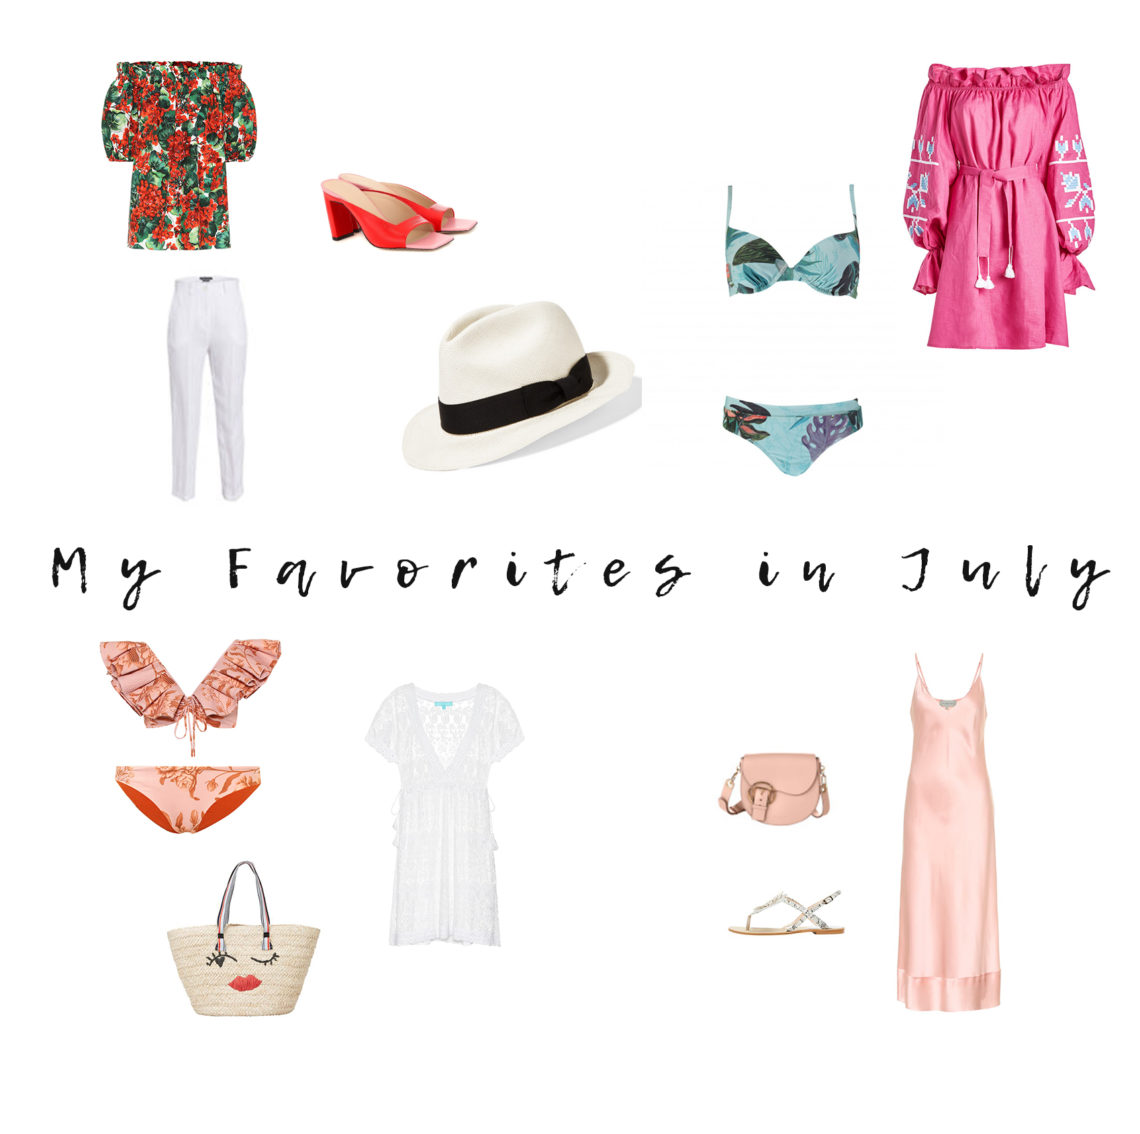 Juli, Favorites, Sommer, Sommerlooks, Sommeroutfits, Frühling, Inspiration, Looks, My Favorites in July, ootd, Outfitinspiration, Outfits, Shopping, Spring, July,